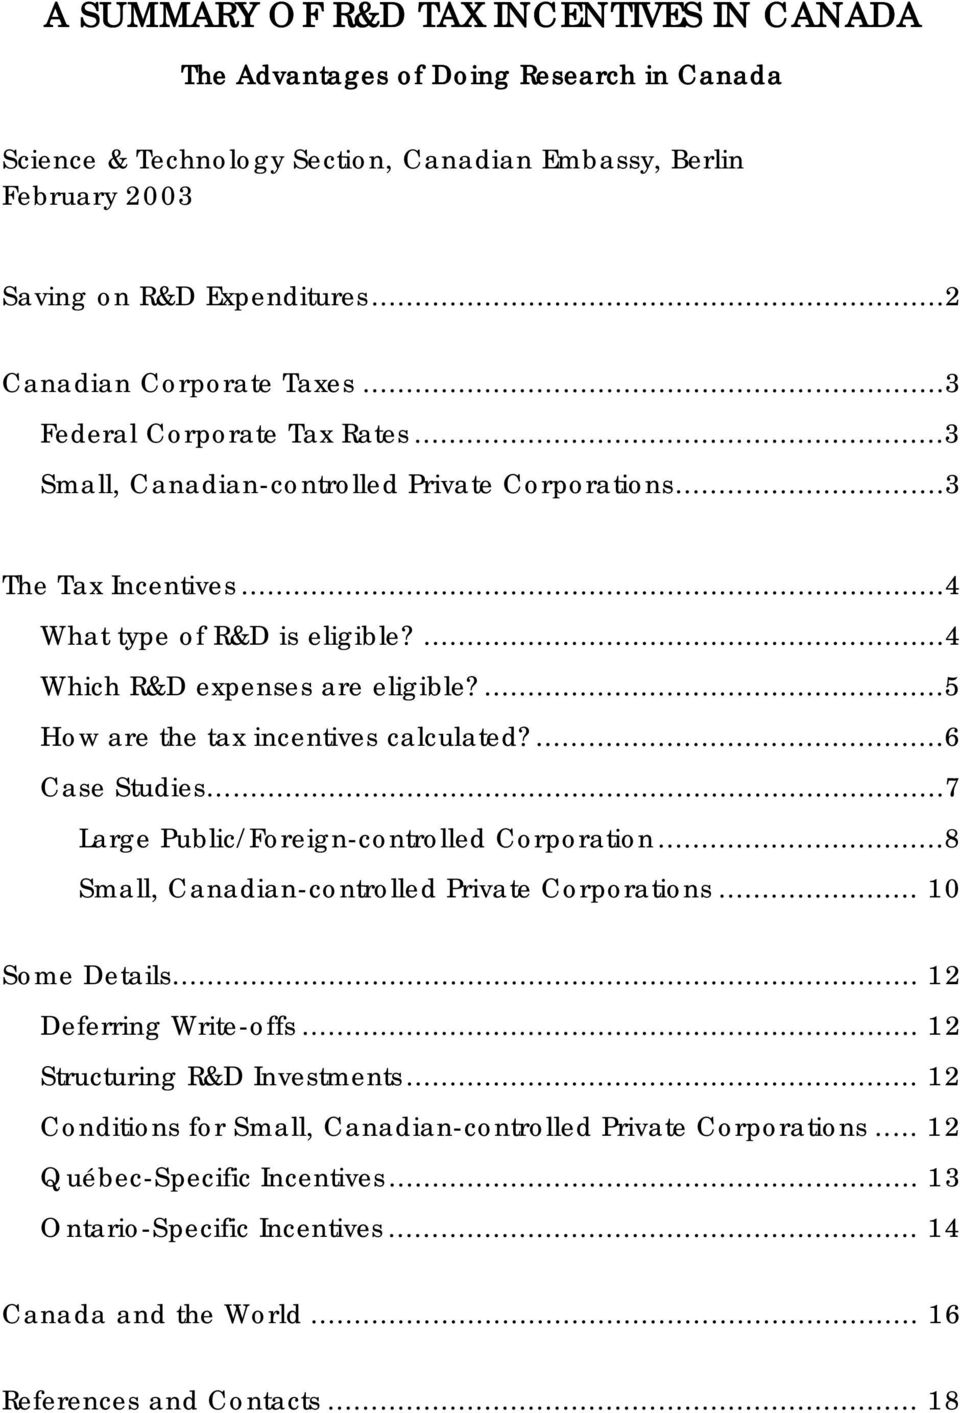 ...4 Which R&D expenses are eligible?...5 How are the tax incentives calculated?...6 Case Studies...7 Large Public/Foreign-controlled Corporation...8 Small, Canadian-controlled Private Corporations.